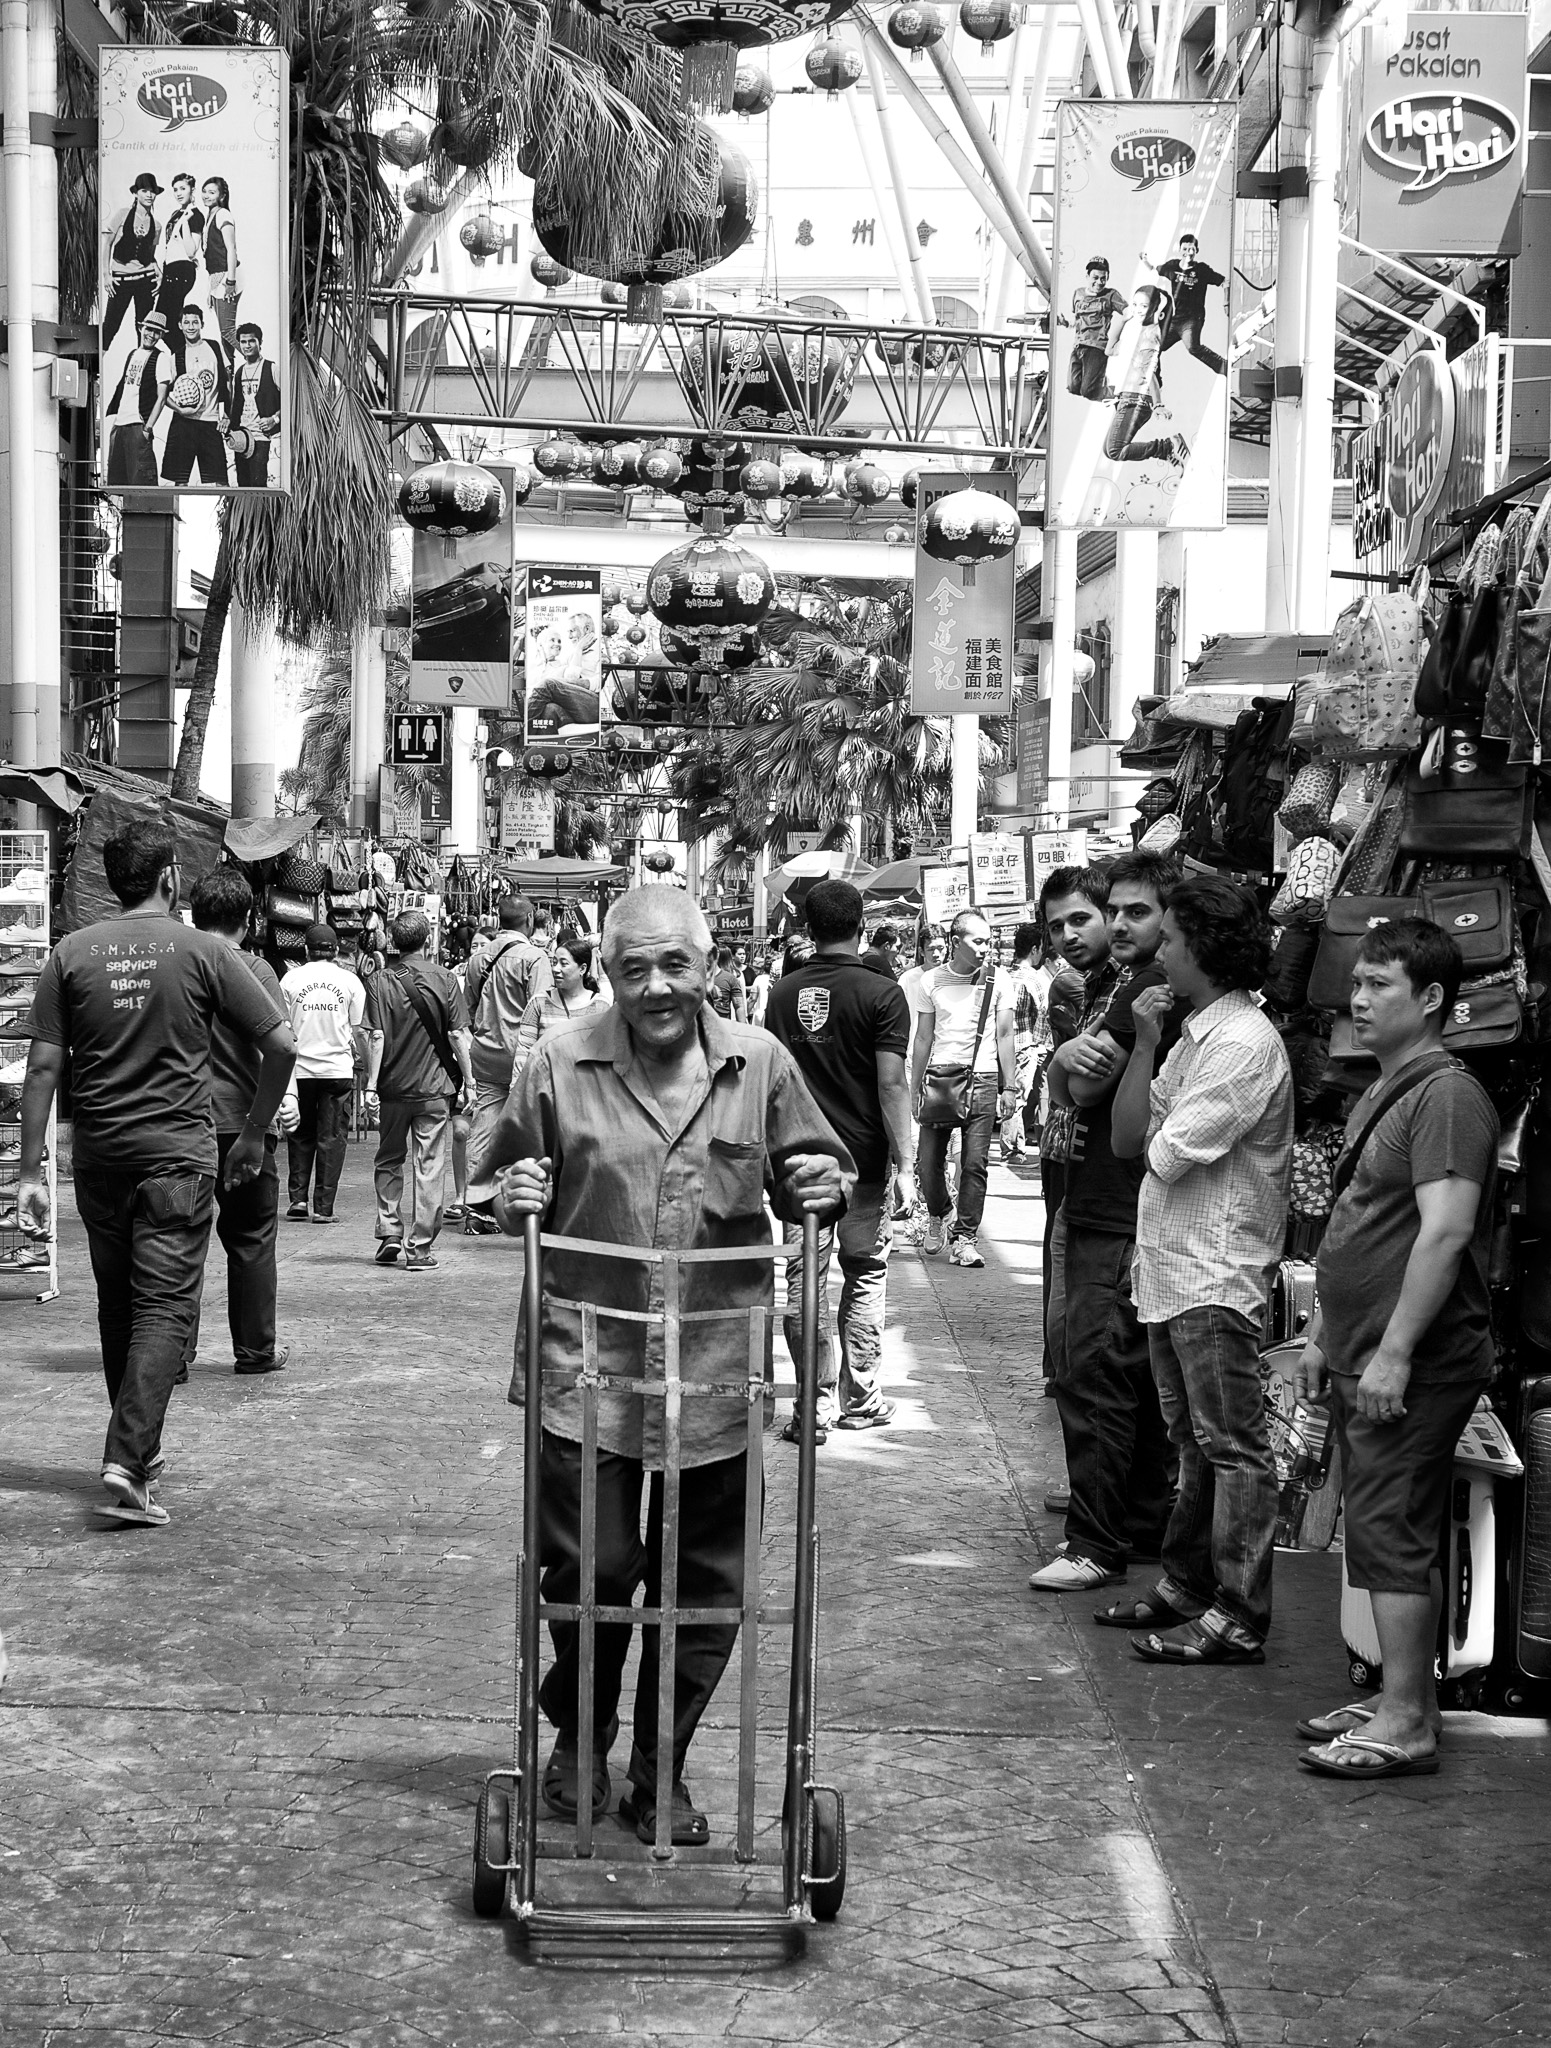 An old delivery man on the way with his trolley, Petaling Street, Kuala Lumpur, Malaysia